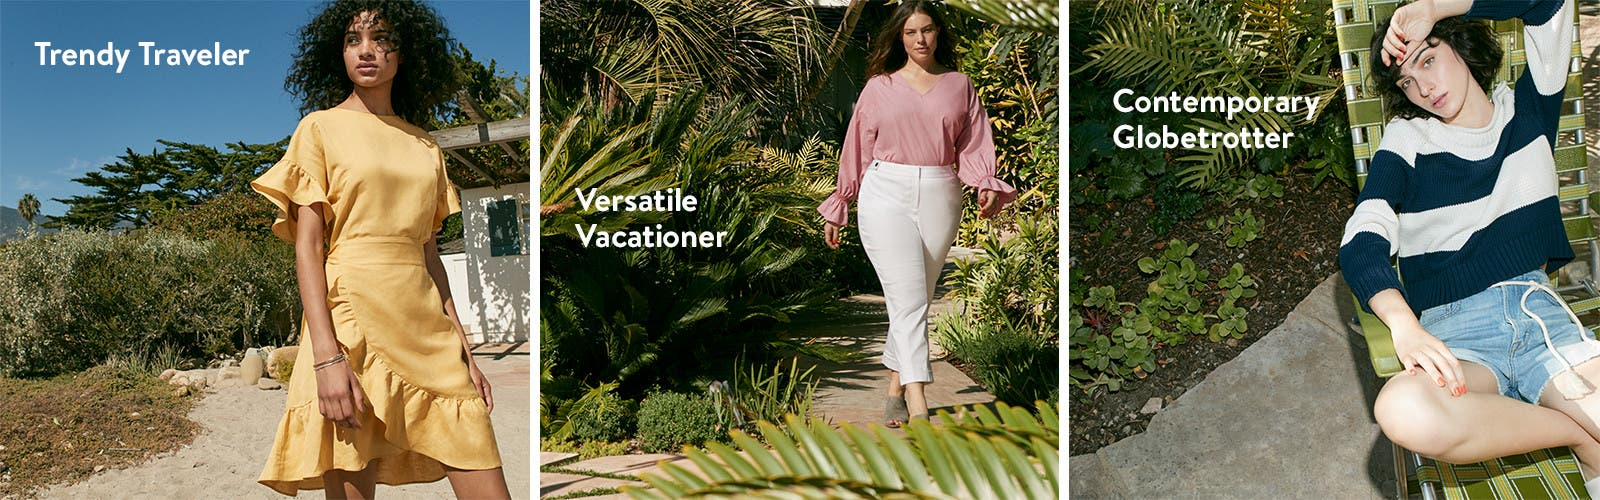 Women's vacation clothing, shoes and accessories.